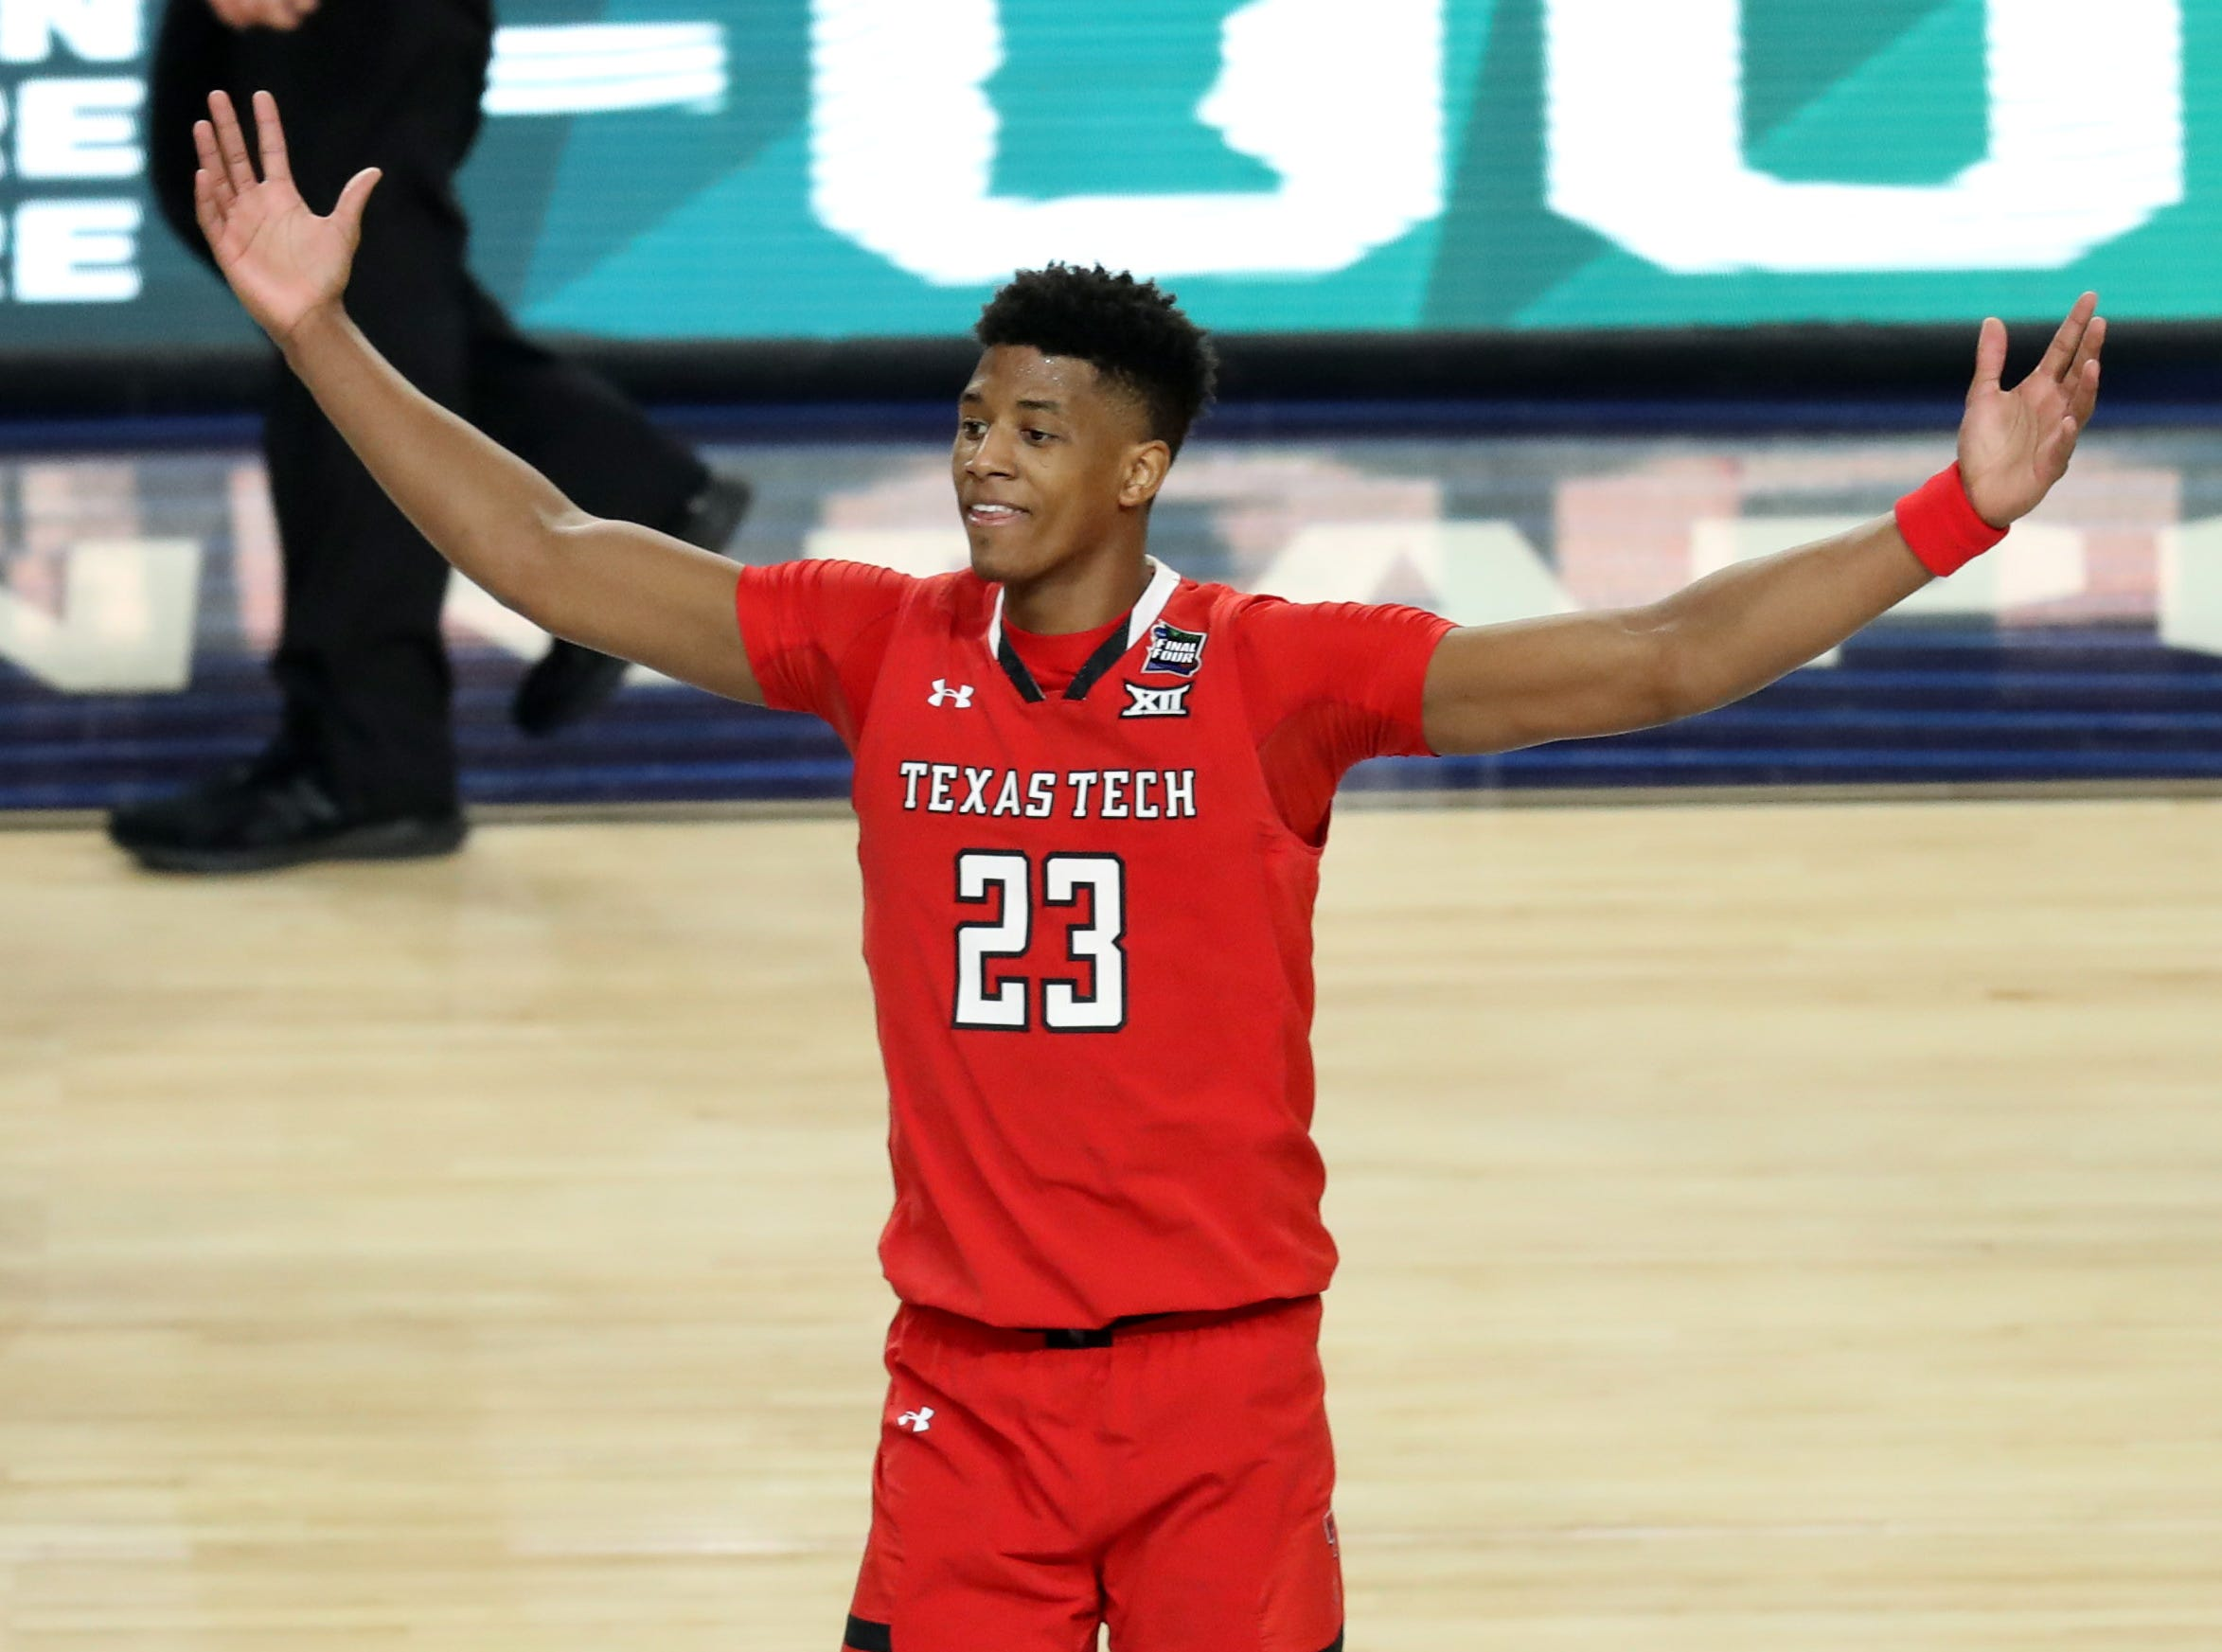 Apr 6, 2019; Minneapolis, MN, USA; Texas Tech Red Raiders guard Jarrett Culver (23) celebrates after defeating the Michigan State Spartans in the semifinals of the 2019 men's Final Four at US Bank Stadium. Mandatory Credit: Brace Hemmelgarn-USA TODAY Sports